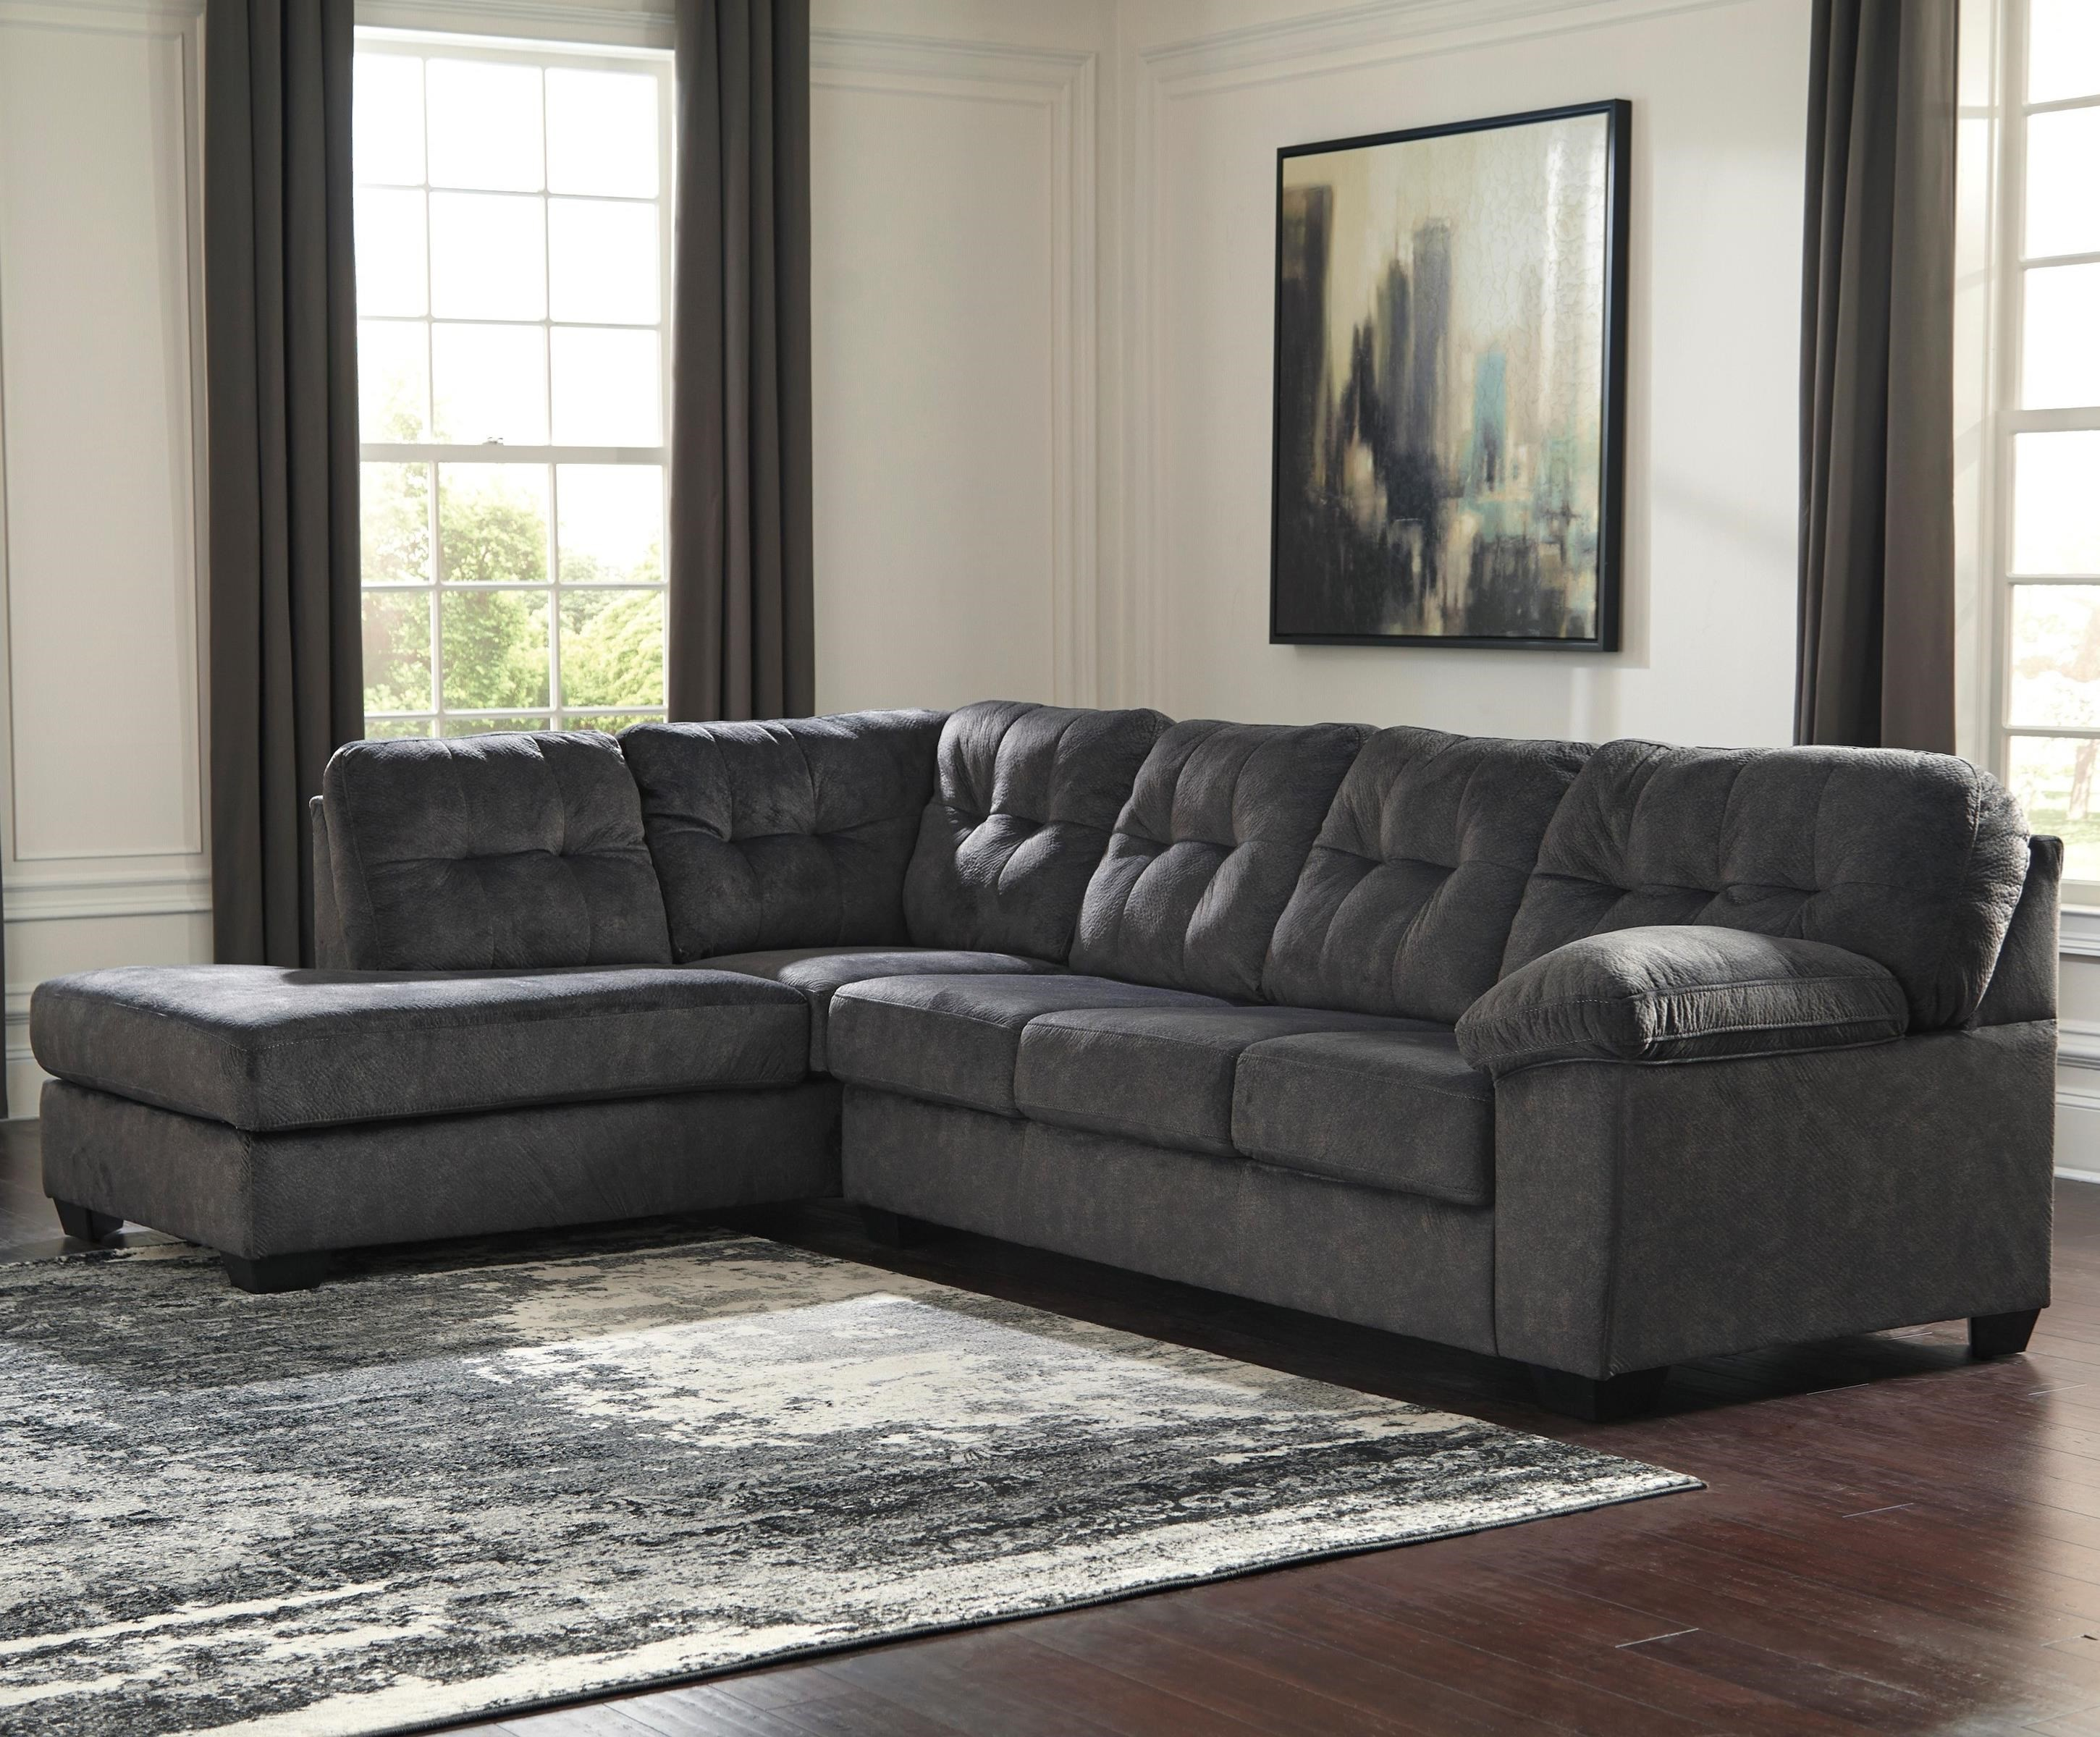 Accrington Sectional with Left Chaise & Queen Sleeper by Signature Design by Ashley at Catalog Outlet